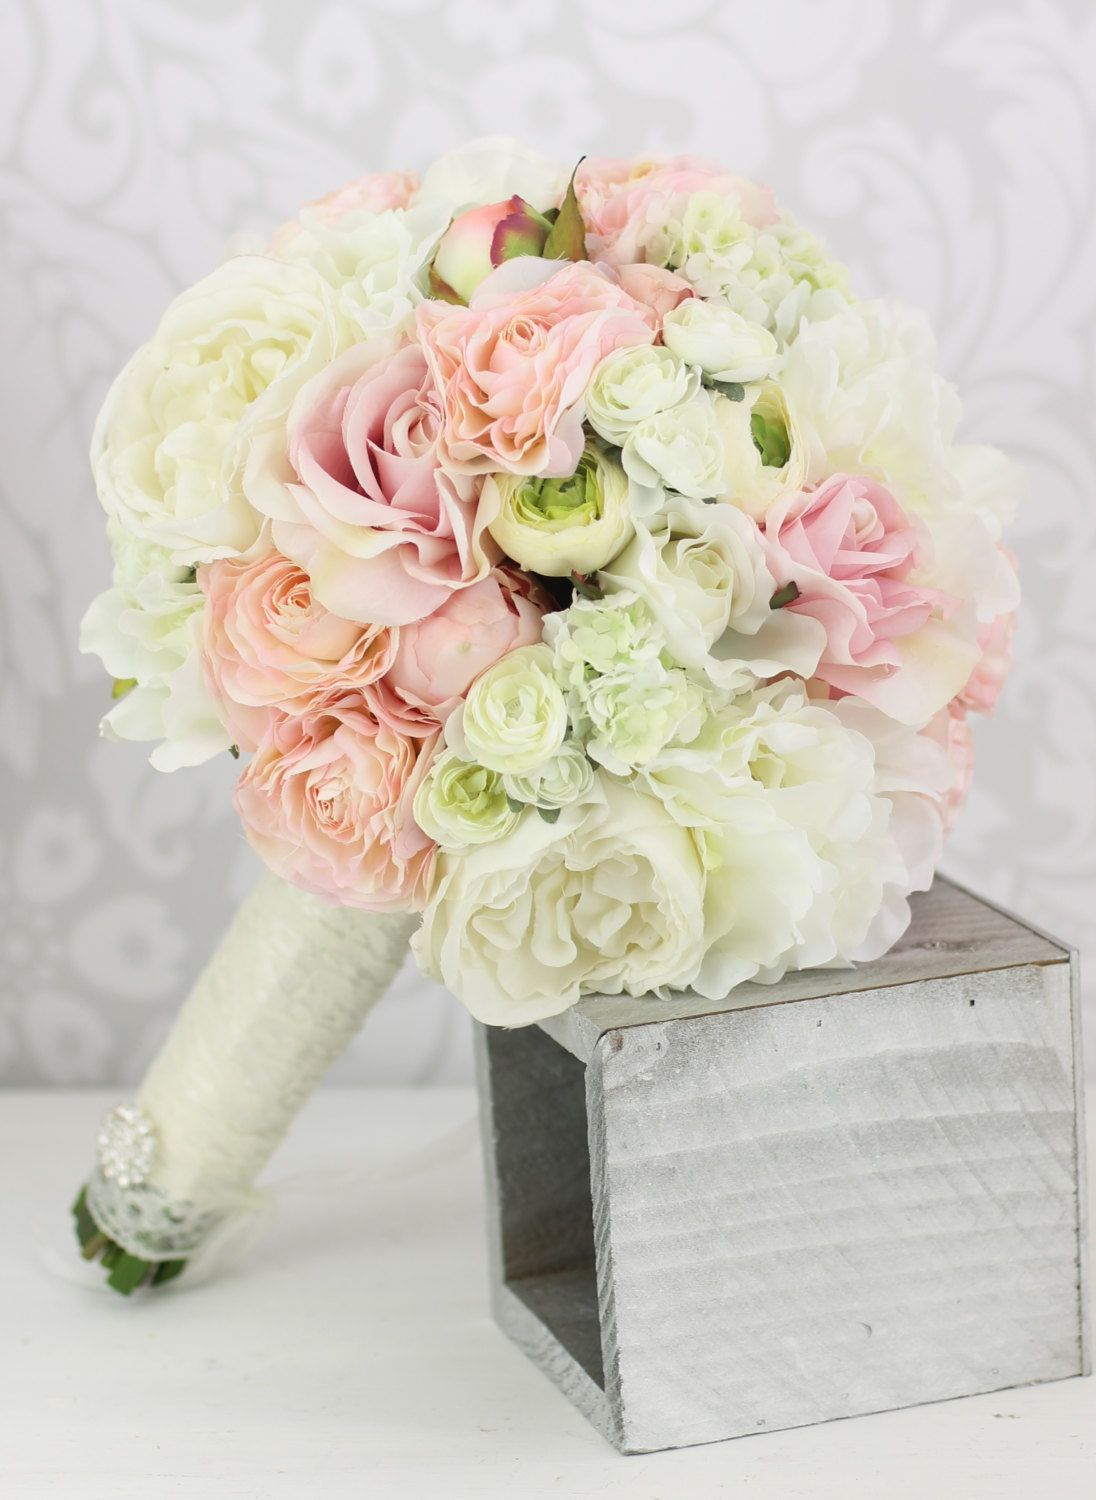 Wedding Floral Packages Nj : Silk bride bouquet peony flowers pink cream spring mix